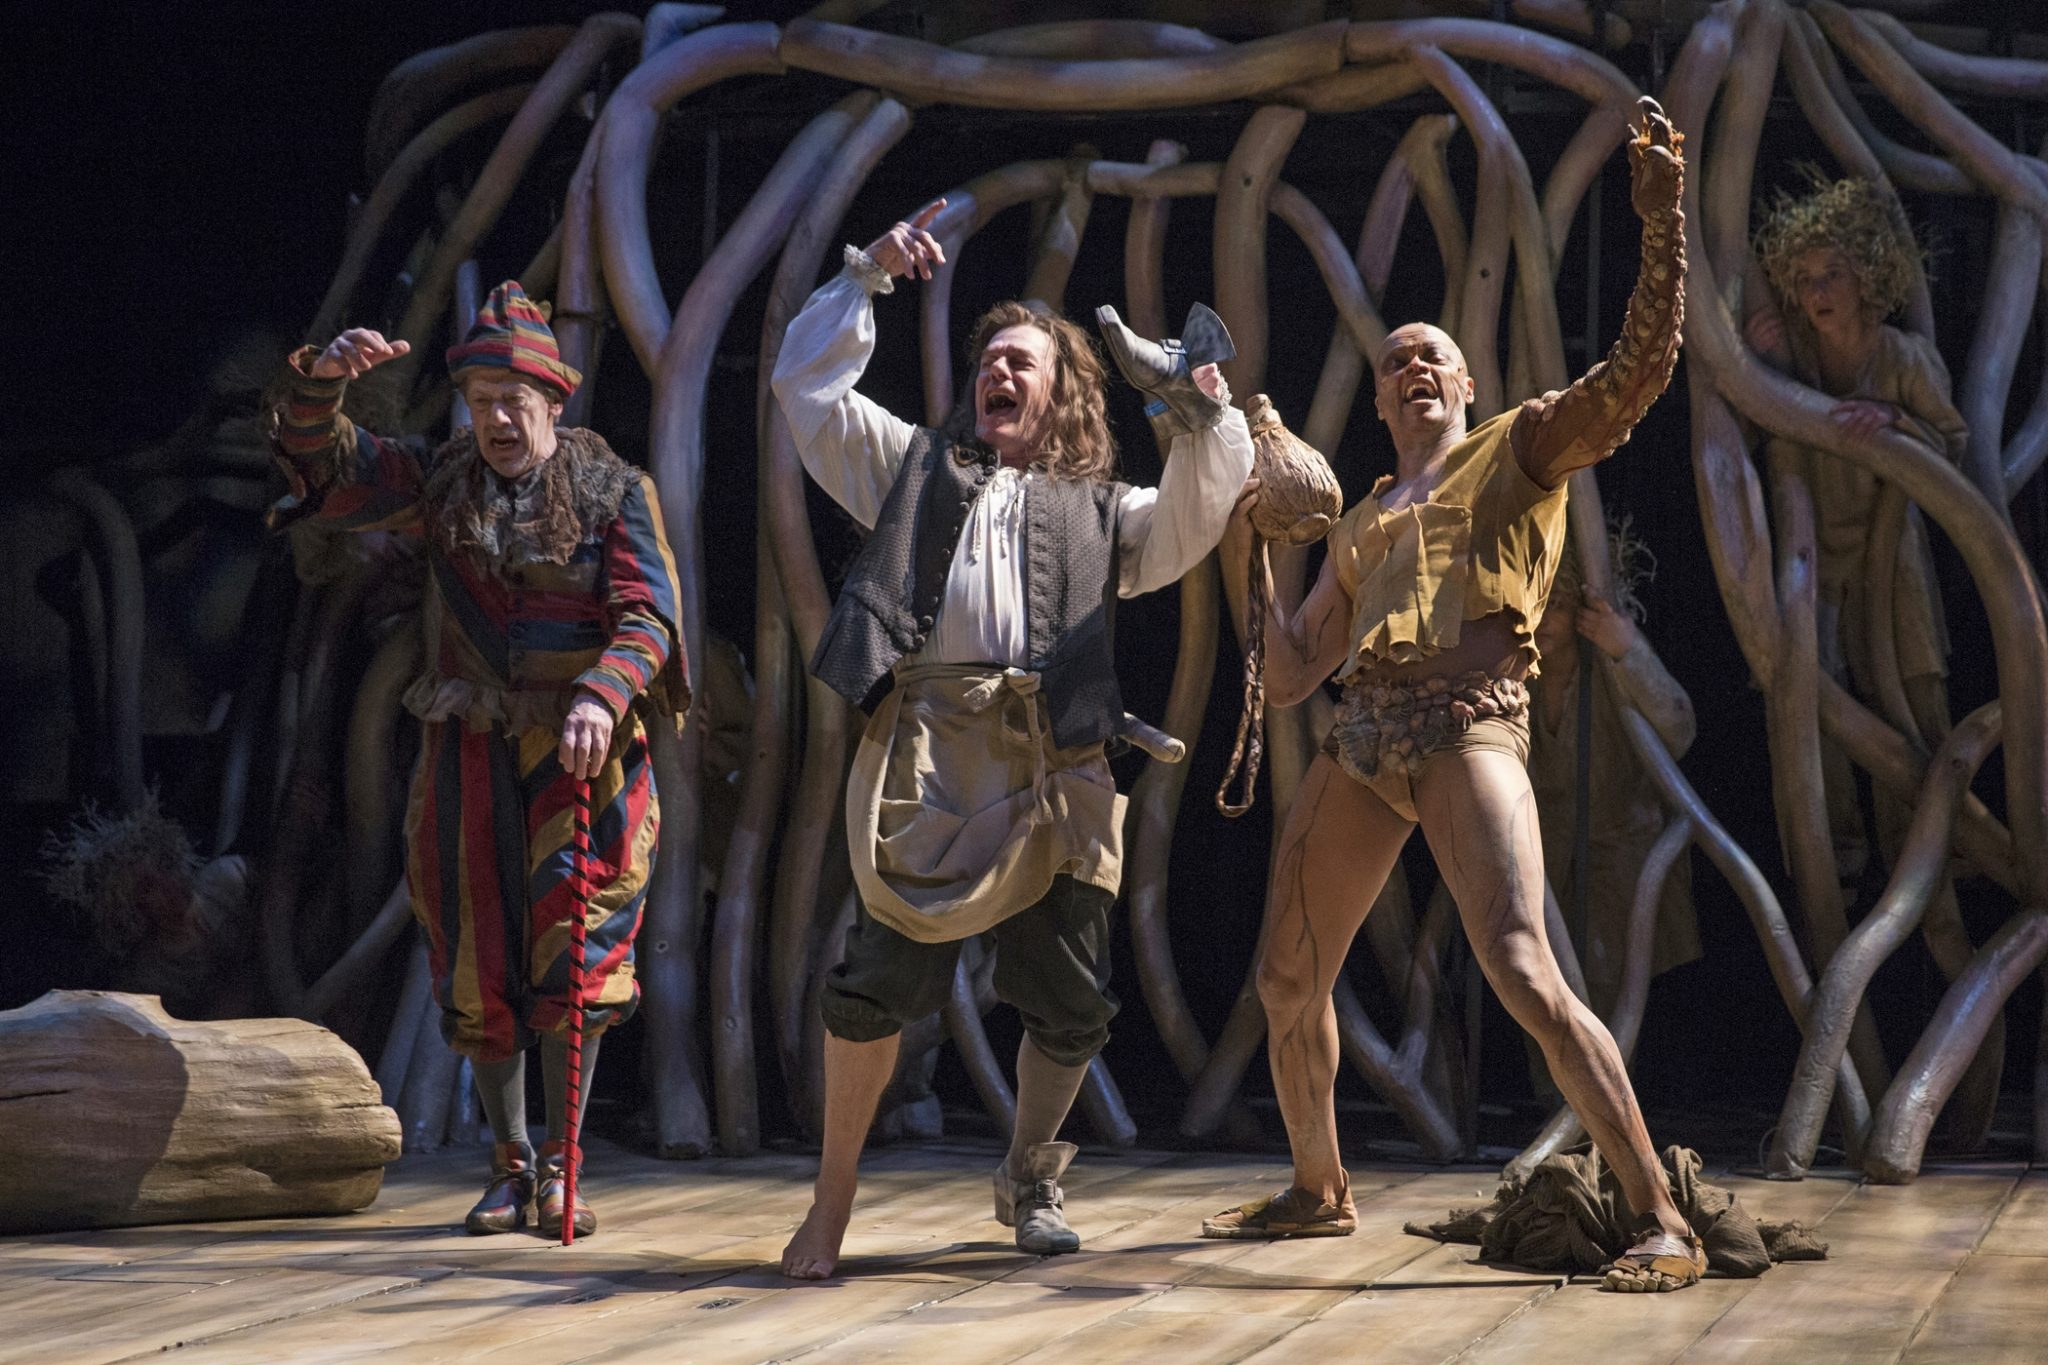 From left: Stephen Ouimette as Trinculo, Tom McCamus as Stephano and Michael Blake as Caliban in The Tempest. Photography by David Hou.